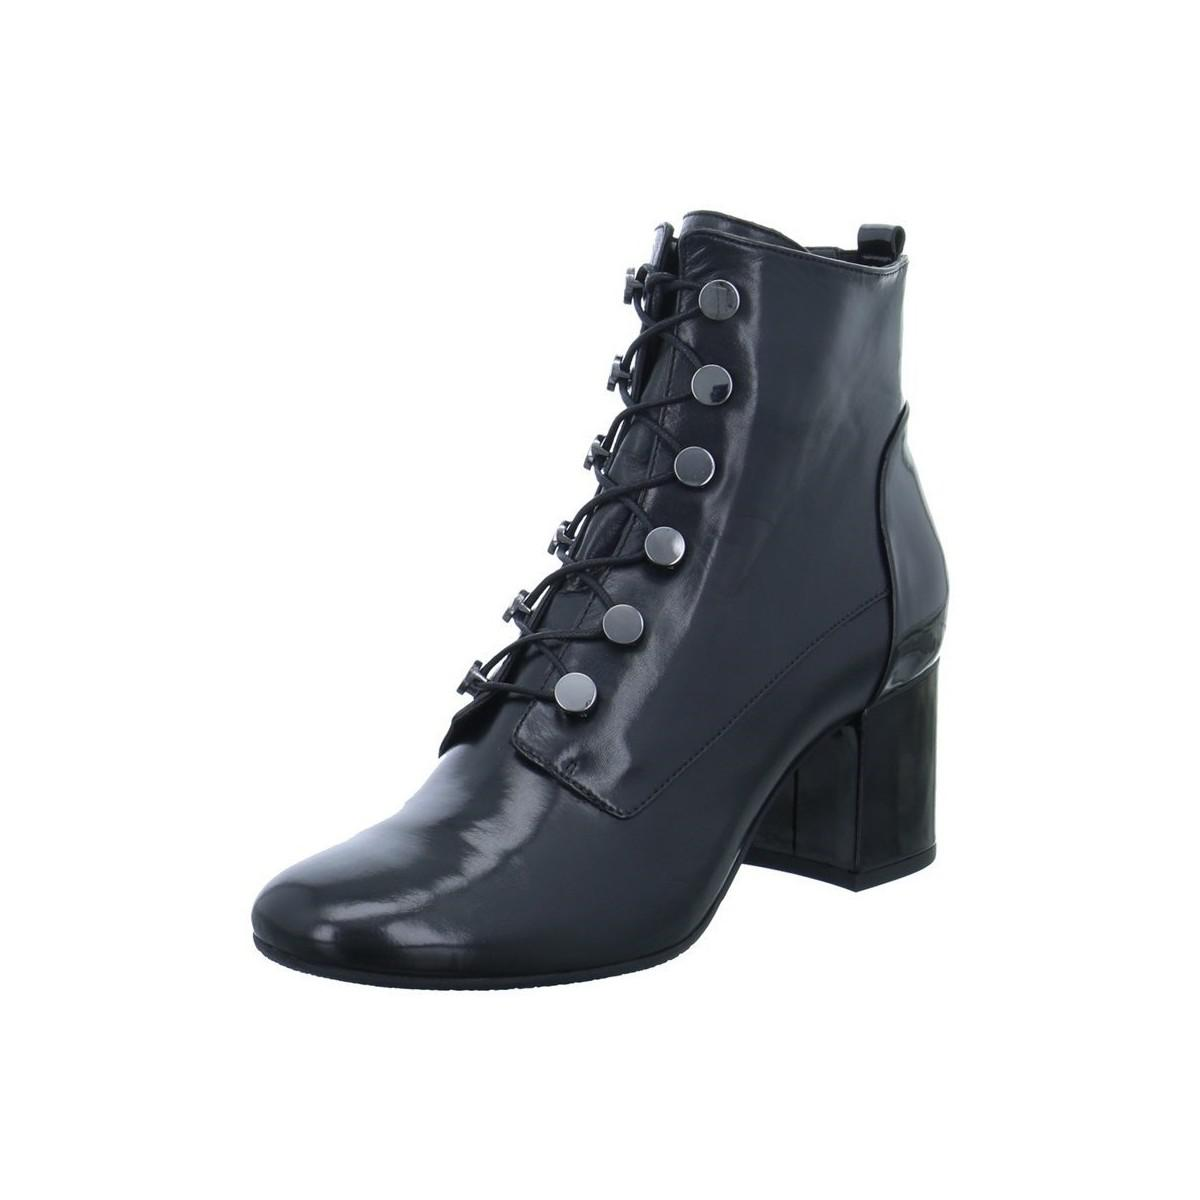 Marketable Cheap Really Gerry Weber Fabia 01 women's Low Ankle Boots in Outlet Sneakernews Clearance Best Sale BcXy4z1